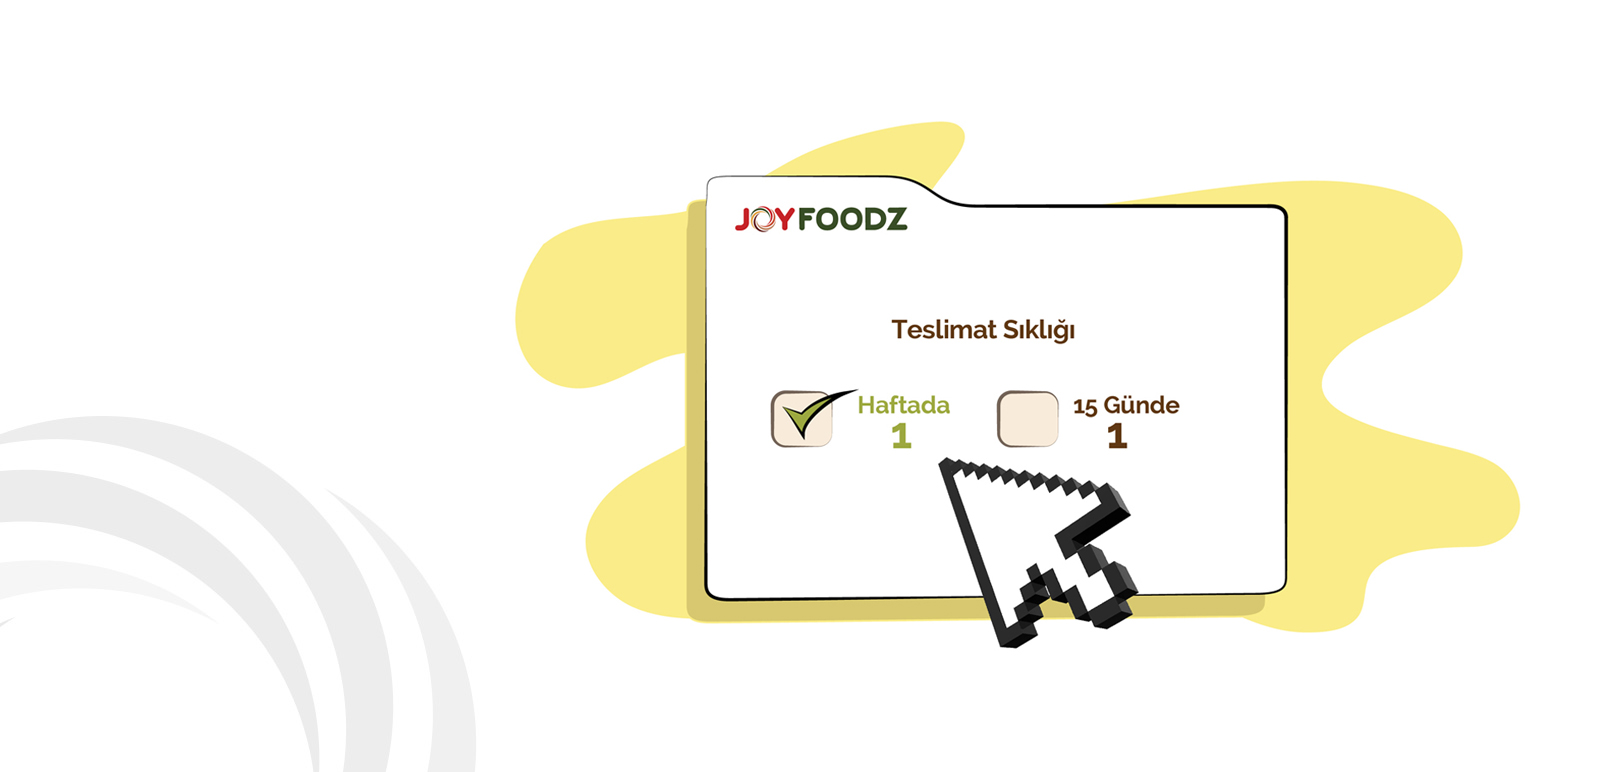 Joyfoodz Animation, Illustration 8